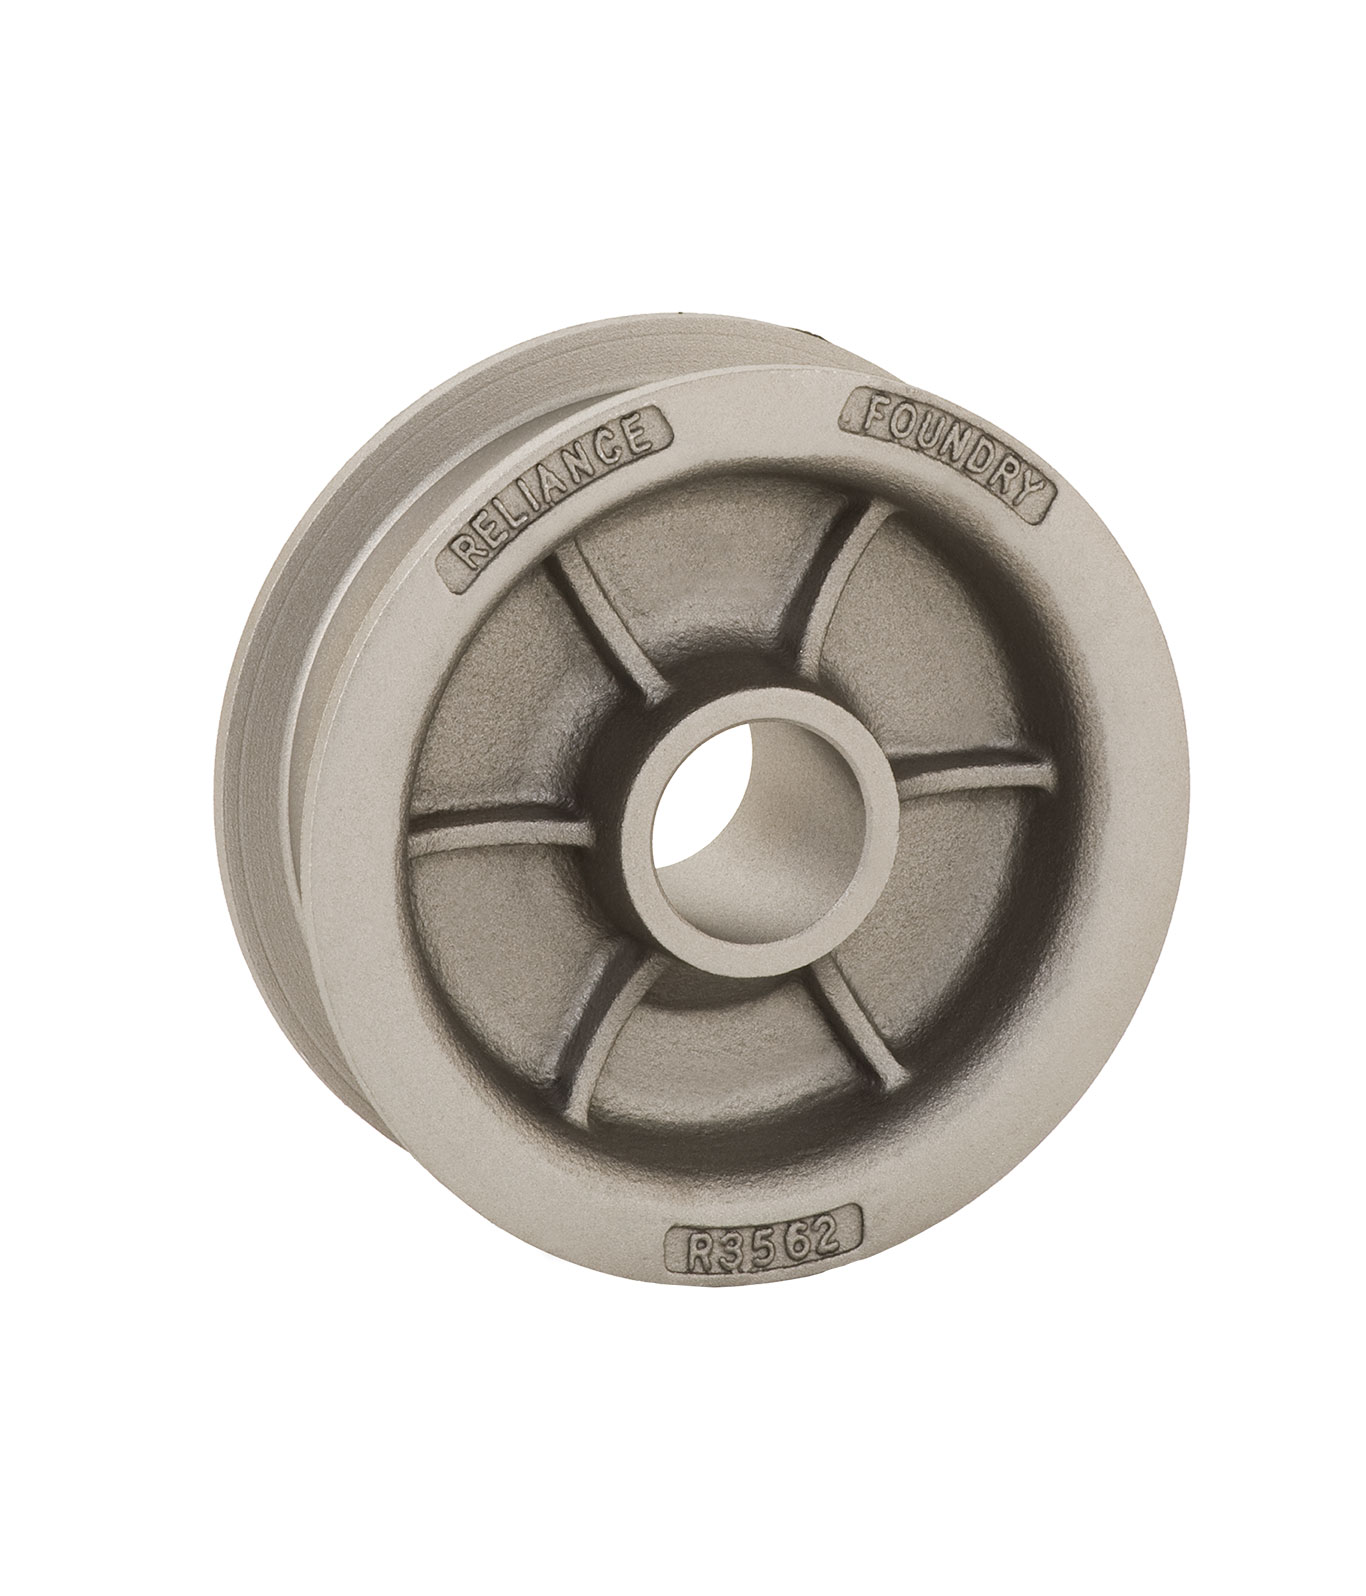 R-3562 Double Flanged Wheel